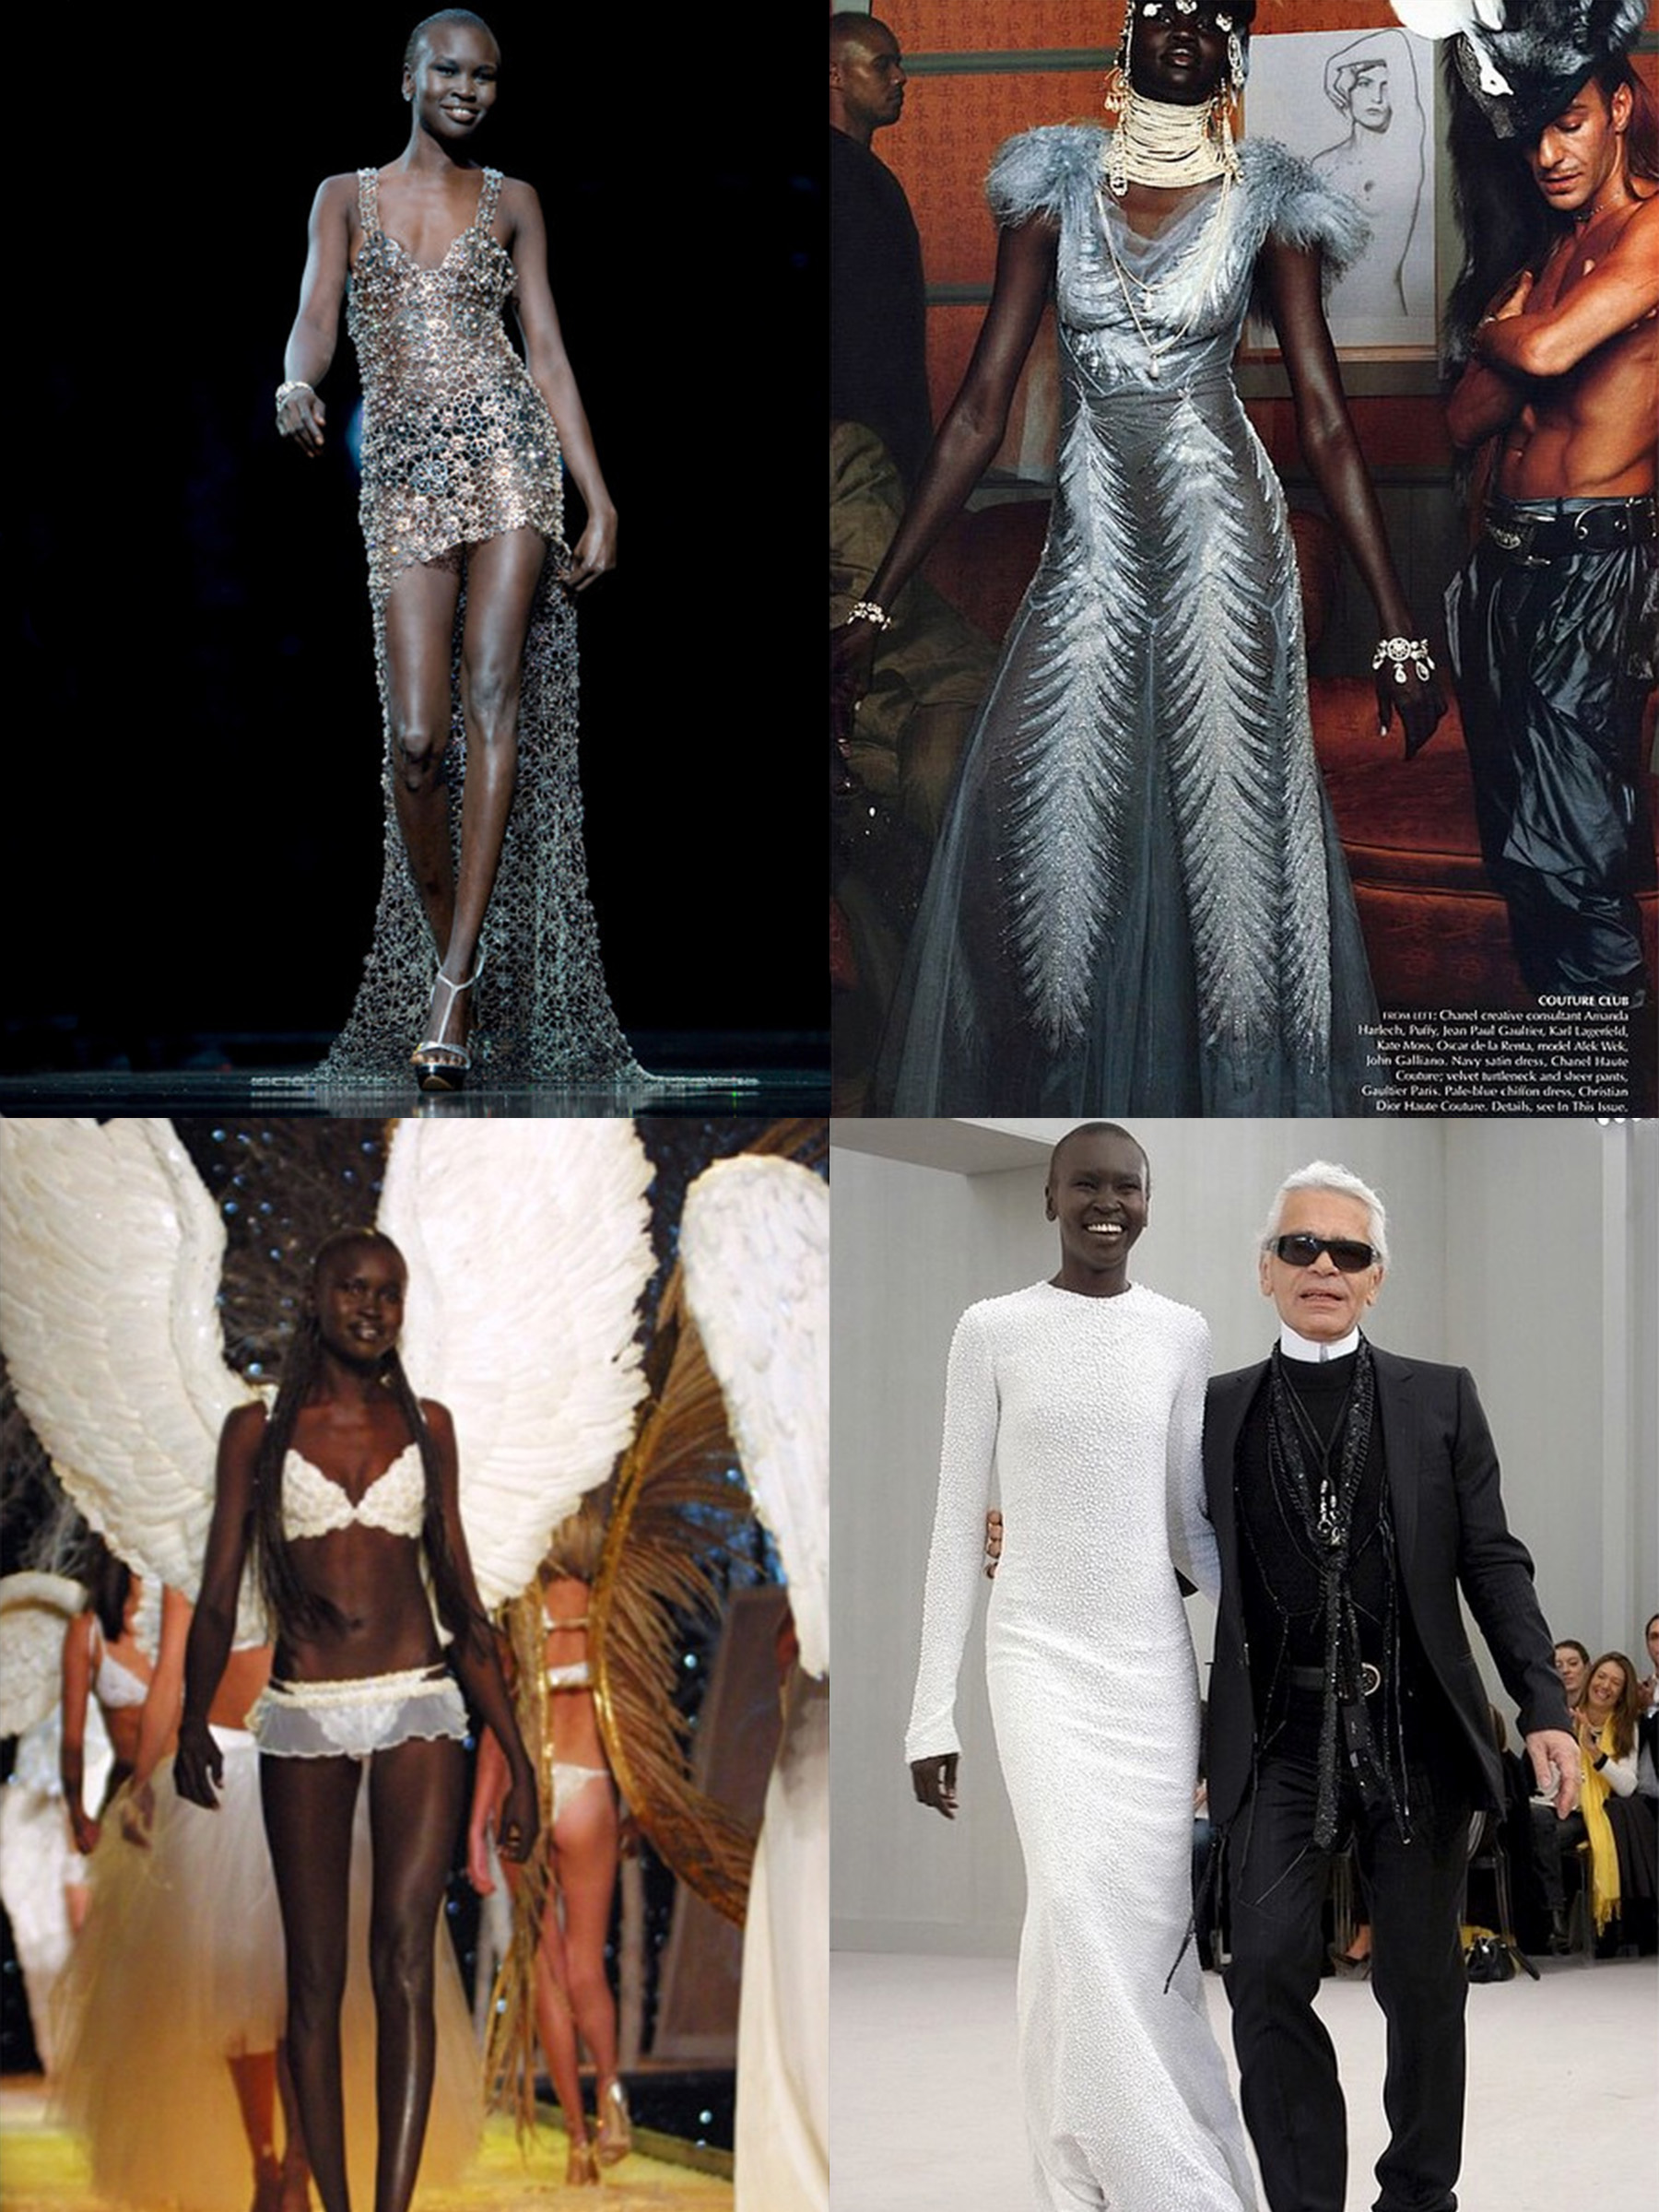 Watch Alek Wek SUD 	2001 video